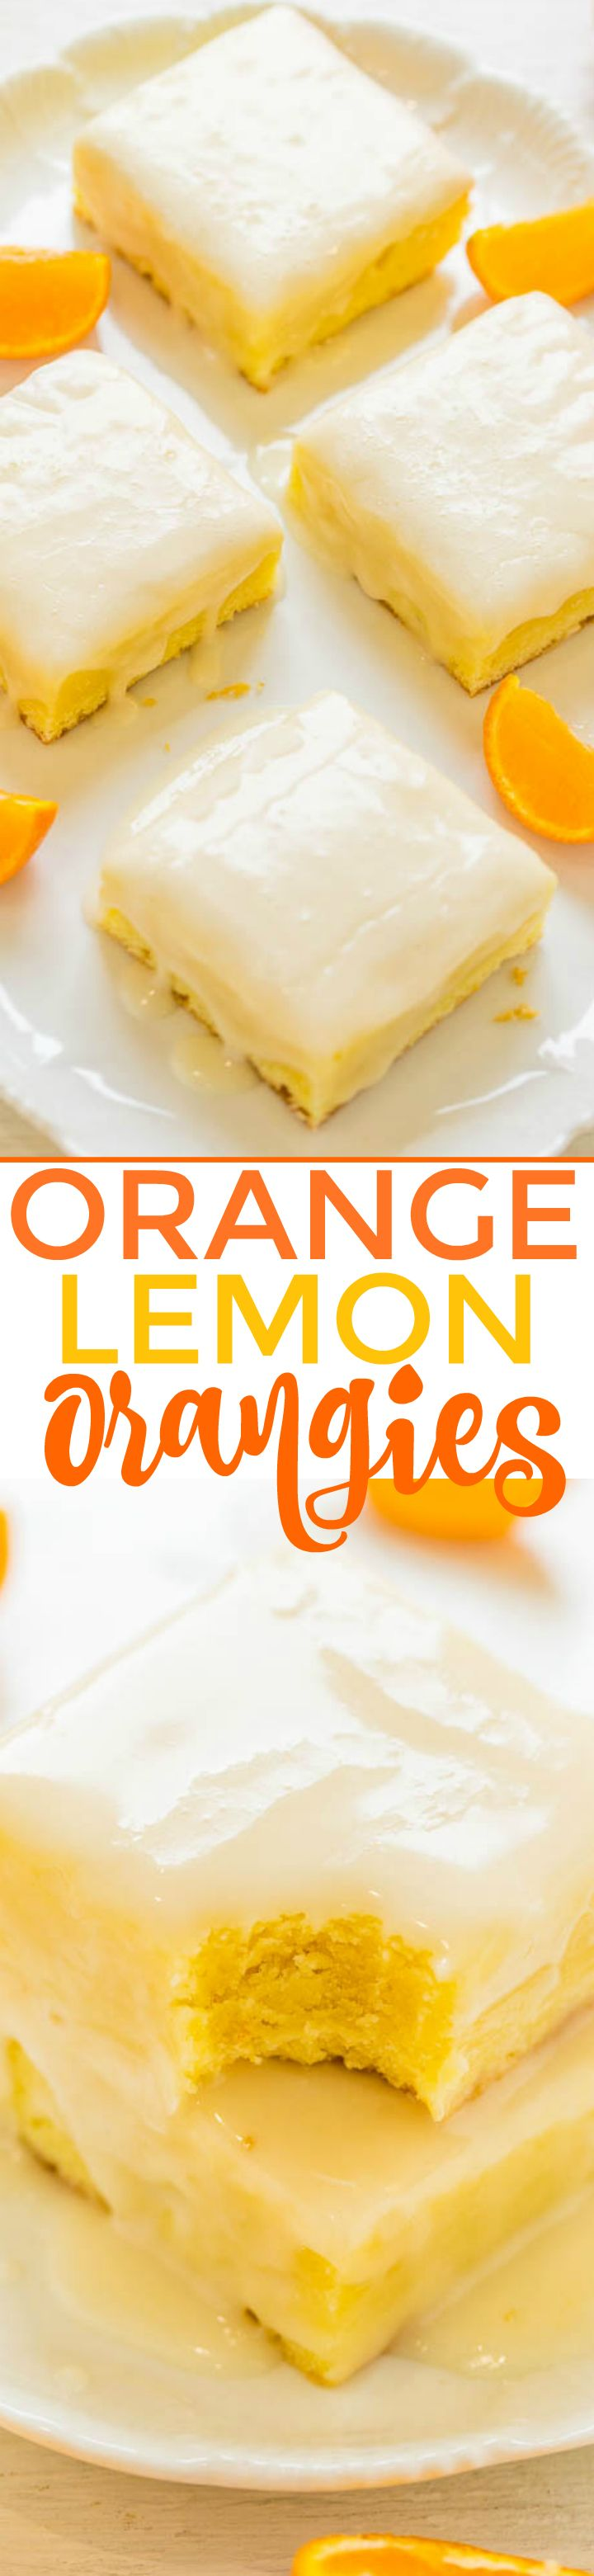 Orange Lemon Orangies – Like brownies, but made with orange, lemon, and white chocolate!! Fast, EASY, dense, chewy, and packed with big, BOLD citrus flavor!!